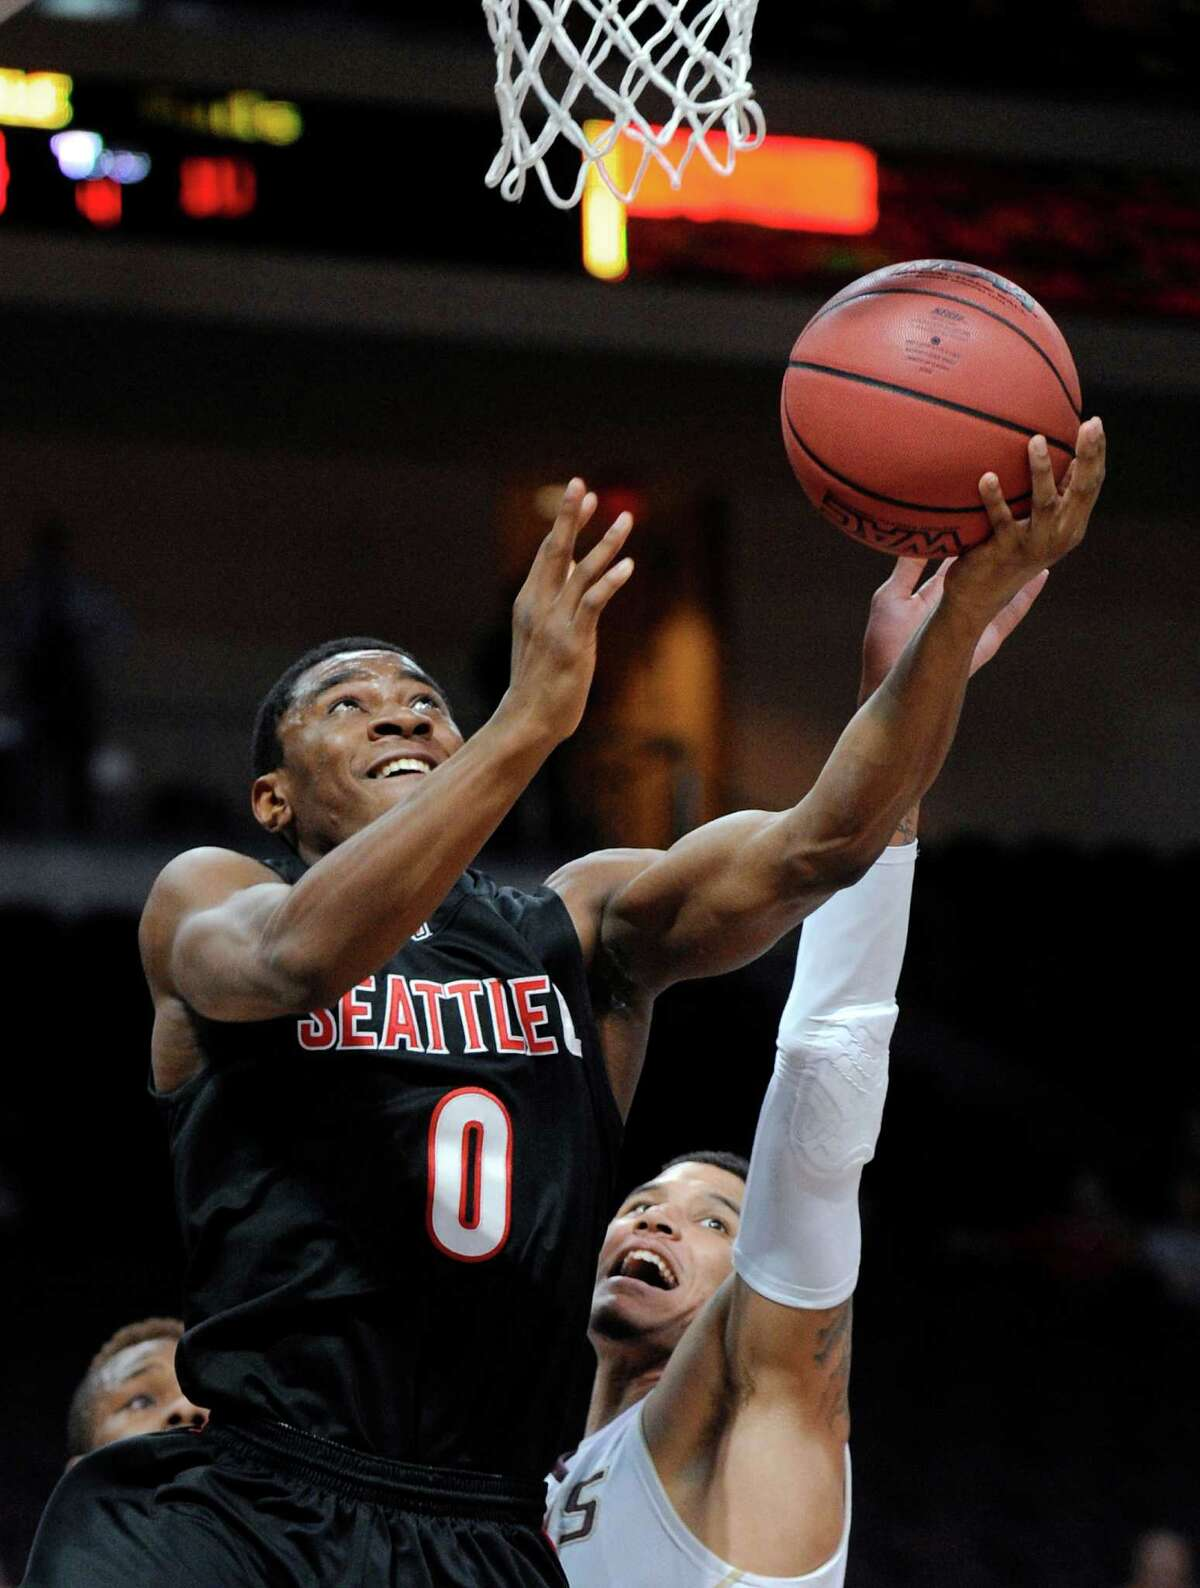 Seattle's Prince Obasi (0) shoot as Texas State's Corey Stern (5) defends during the first half of a Western Athletic Conference tournament NCAA college basketball game, Tuesday, March 12, 2013, in Las Vegas. (AP Photo/David Becker)